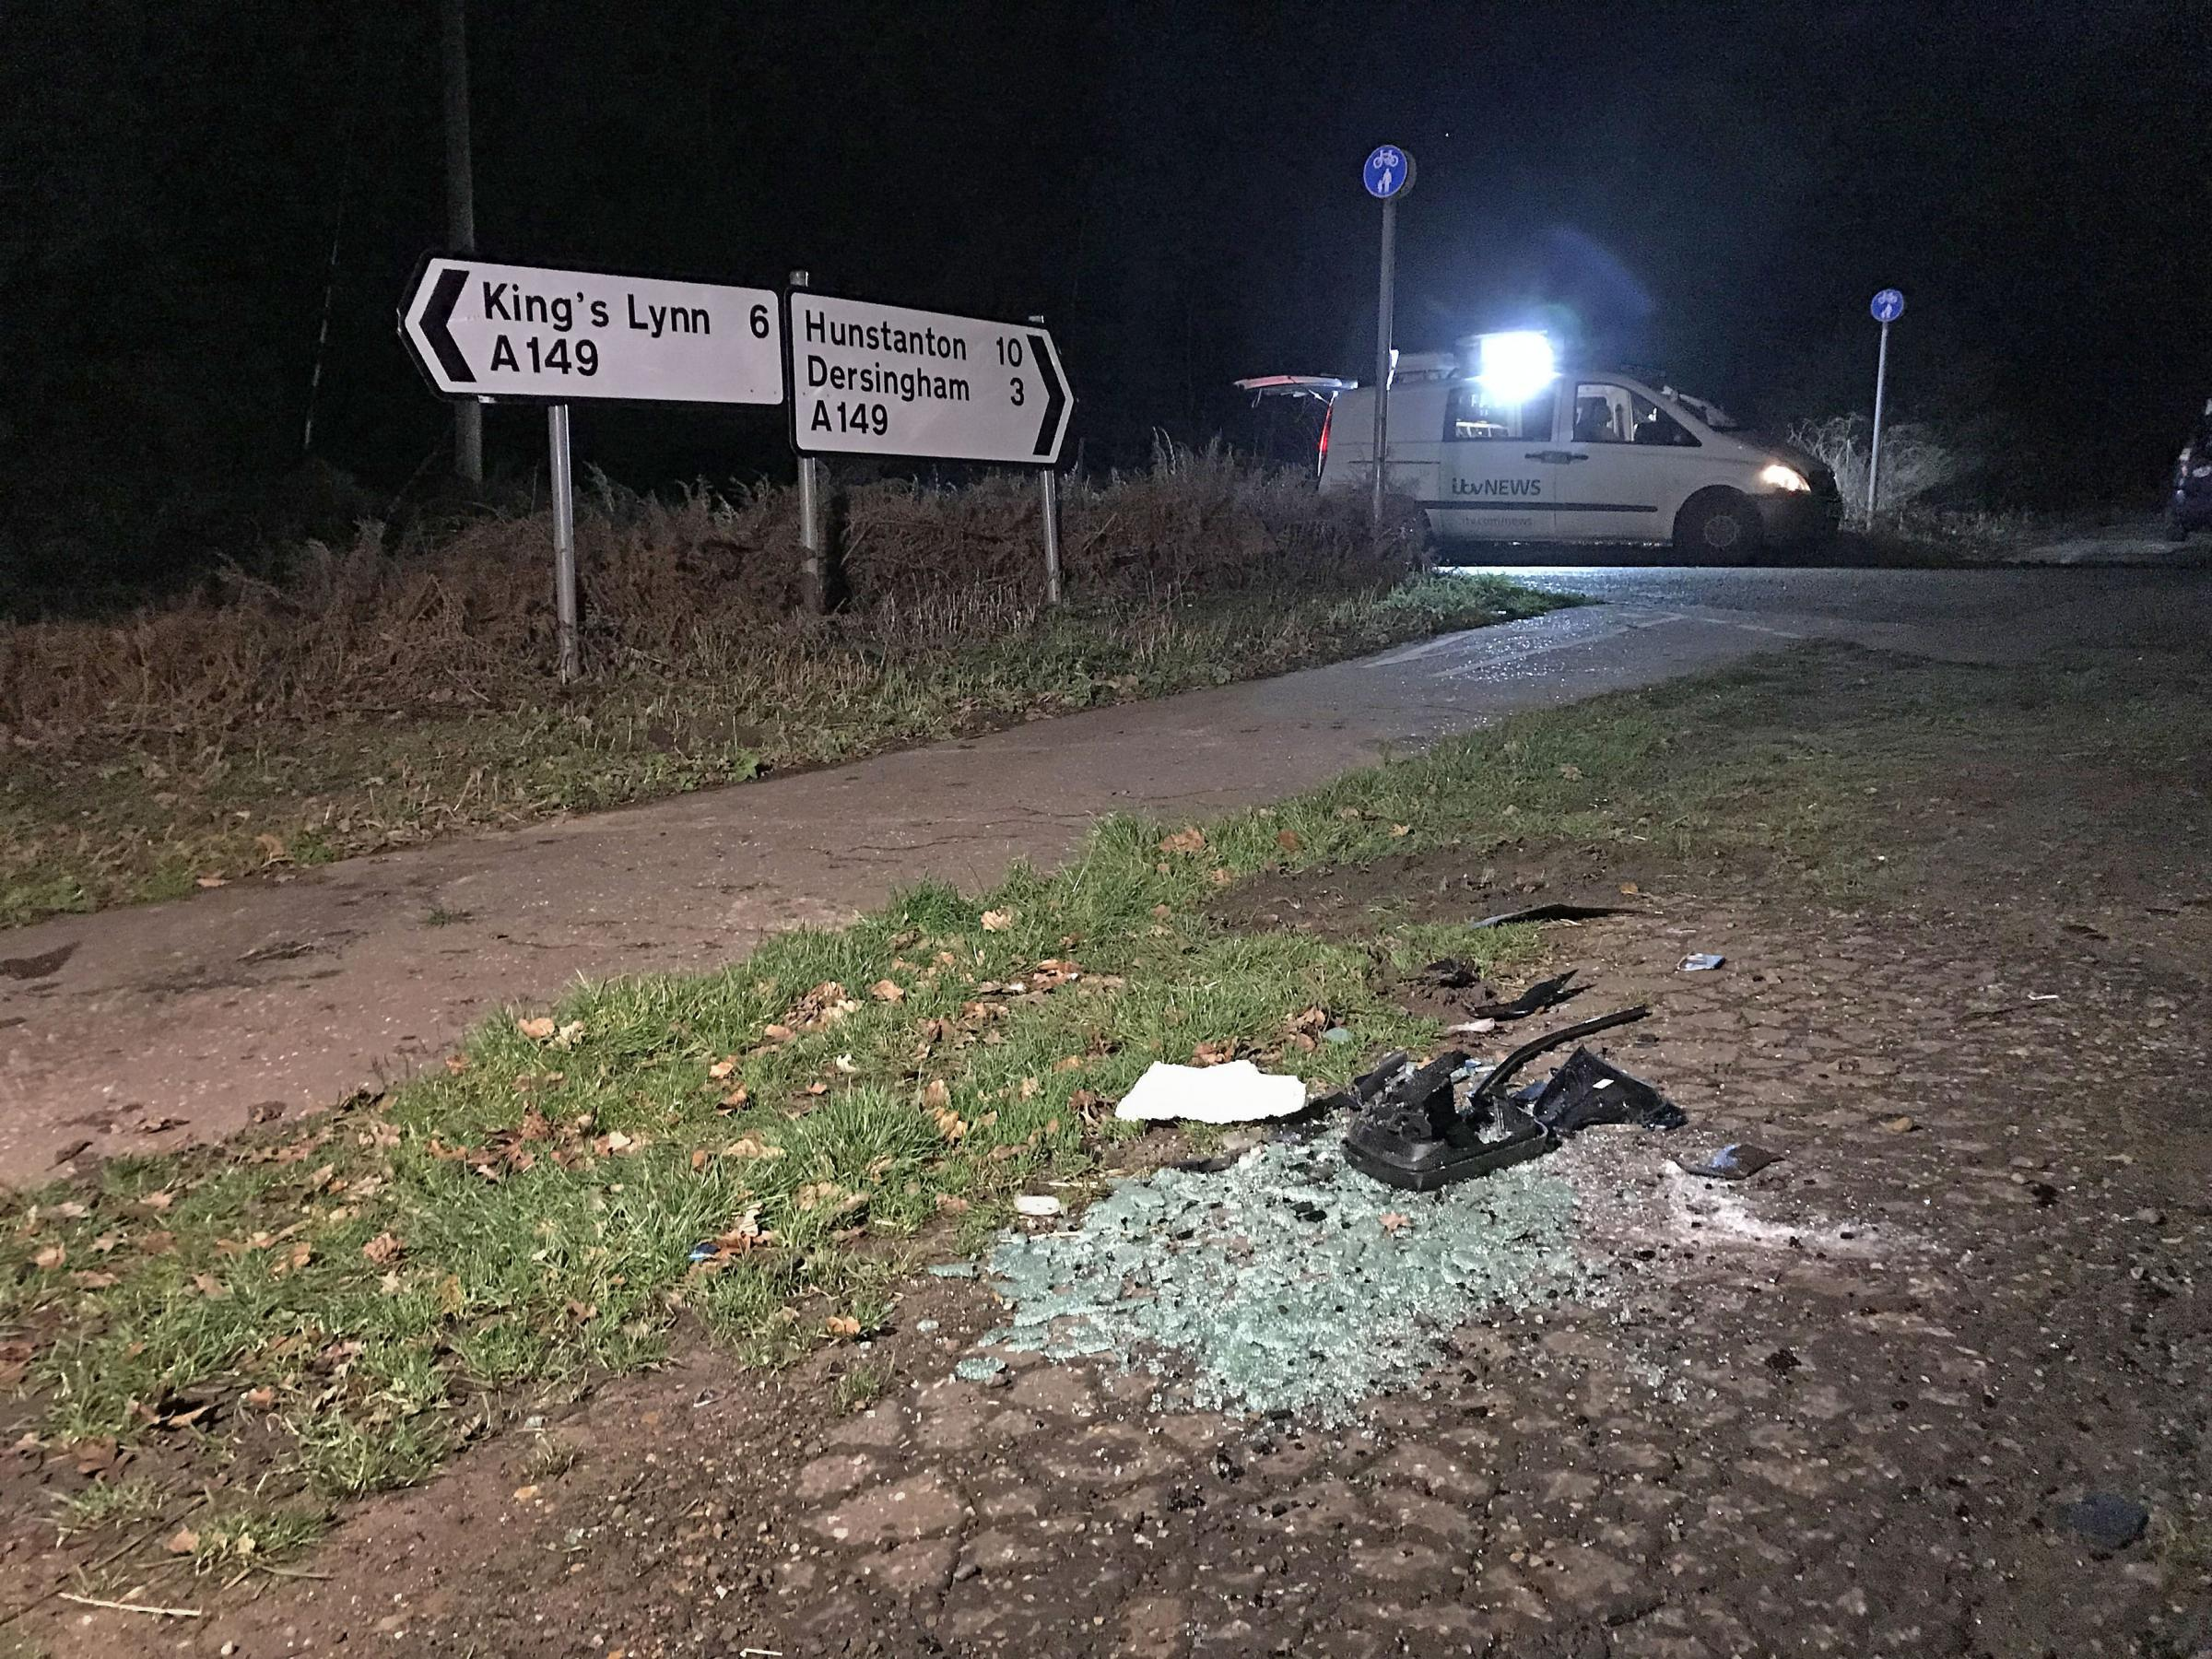 The scene near to the Sandringham Estate where the Duke of Edinburgh was involved in a road accident while driving. PRESS ASSOCIATION Photo. Picture date: Thursday January 17, 2019. Philip, 97, was not injured in the crash on Thursday afternoon, Buckingh